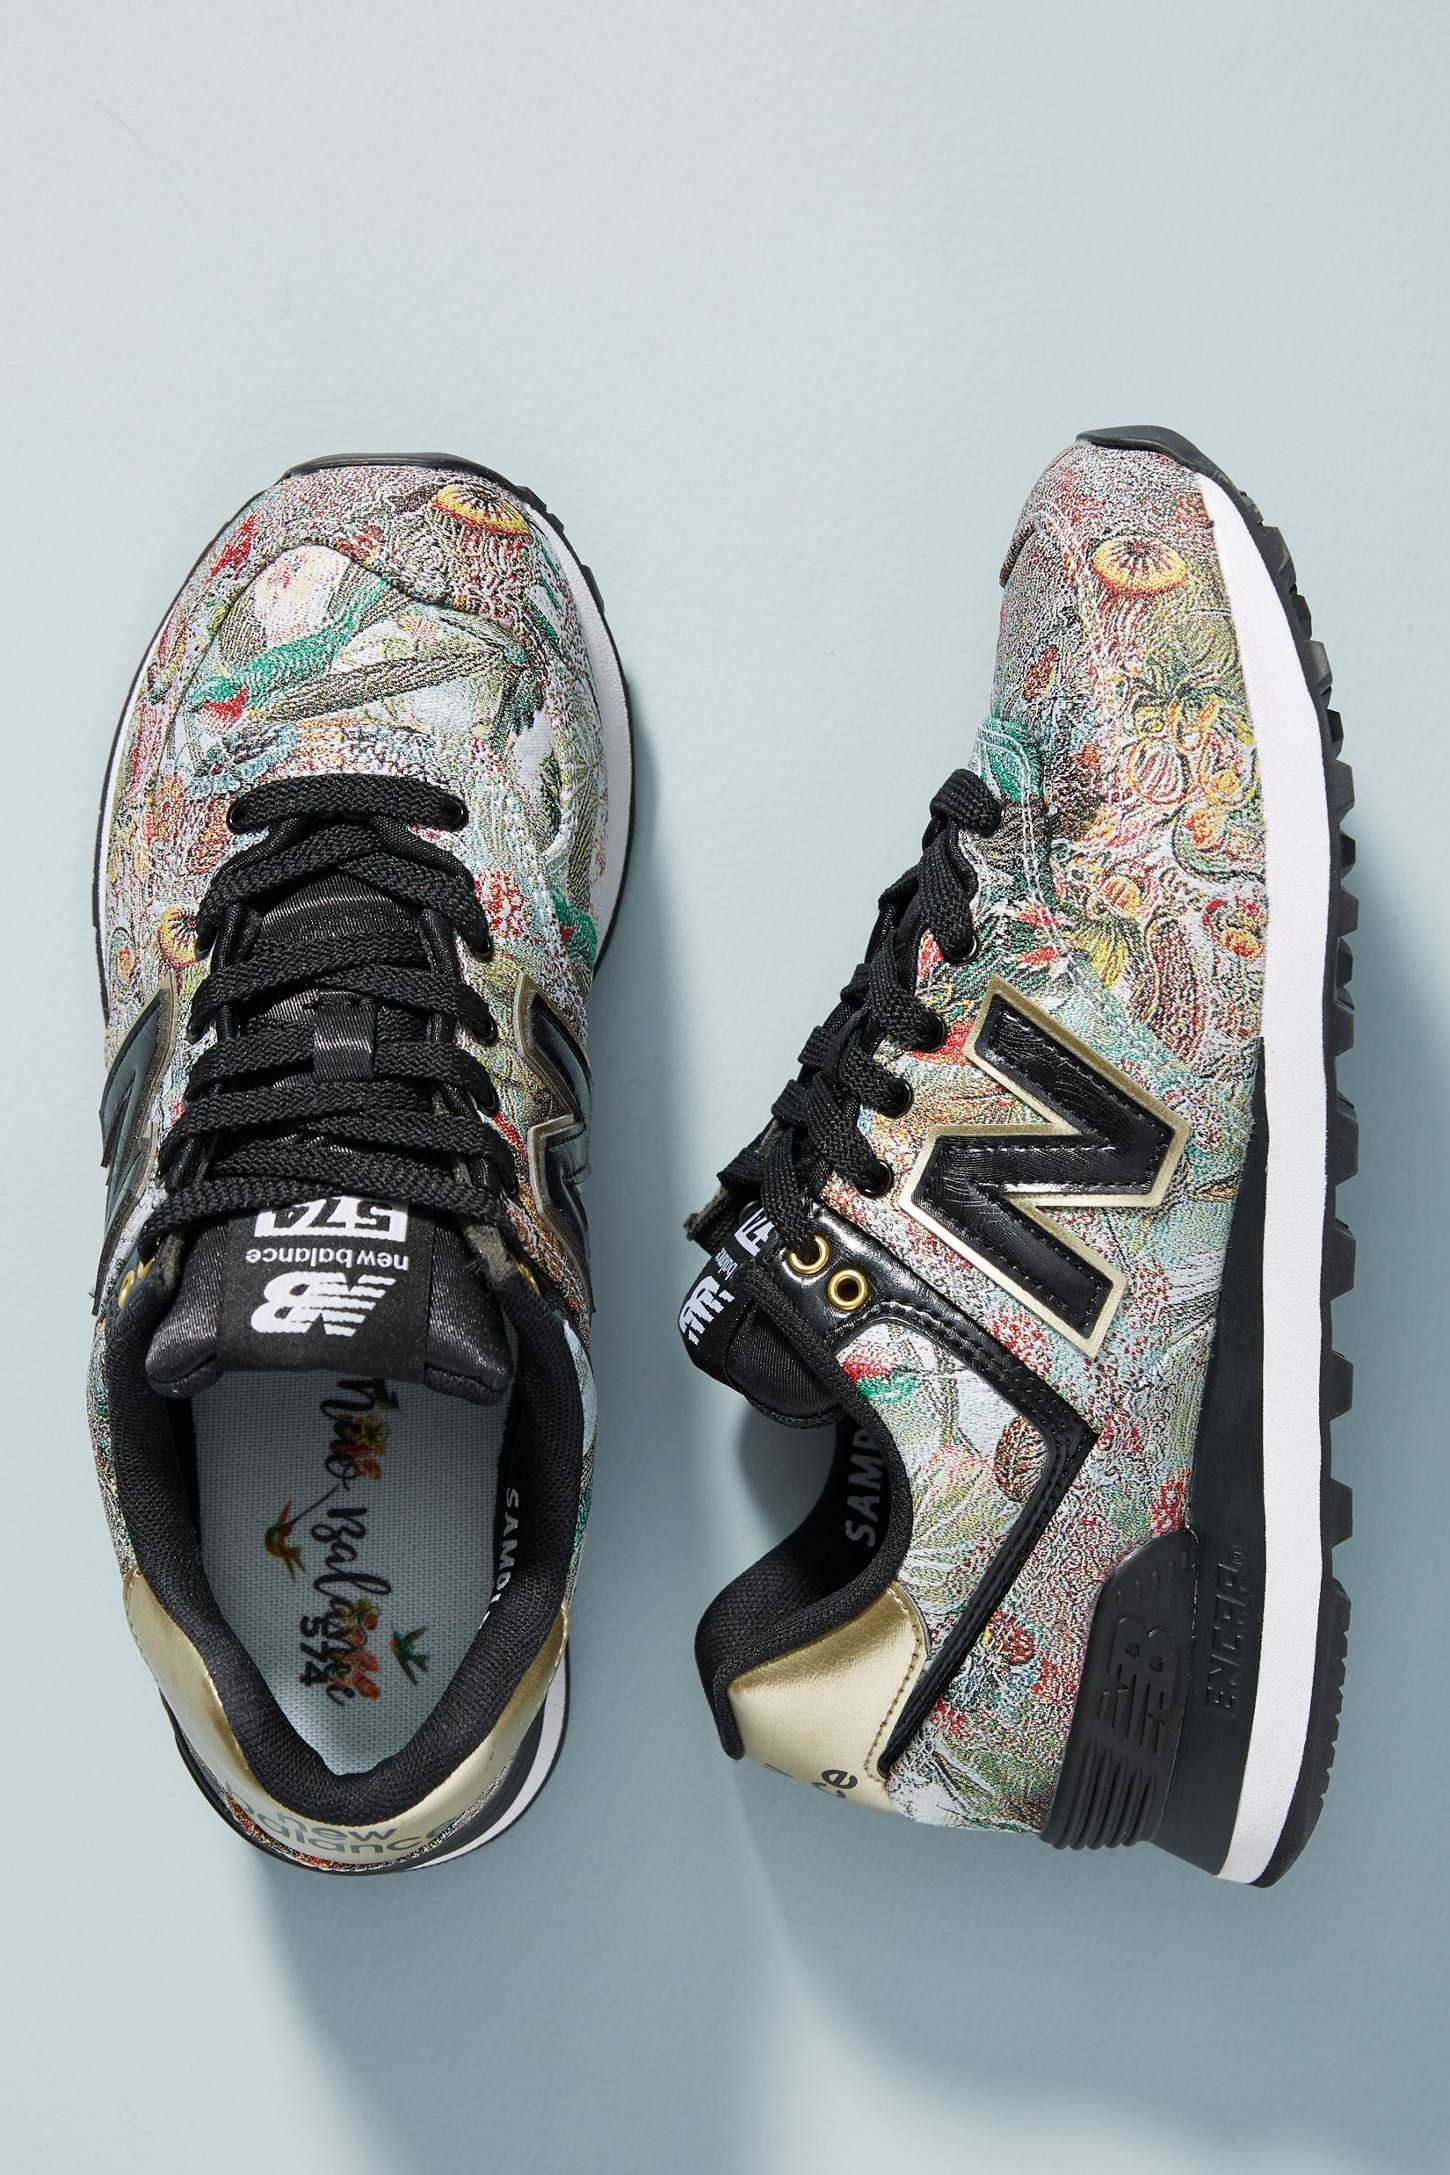 New Balance Sweet Nectar 574 Sneakers | Spring Summer